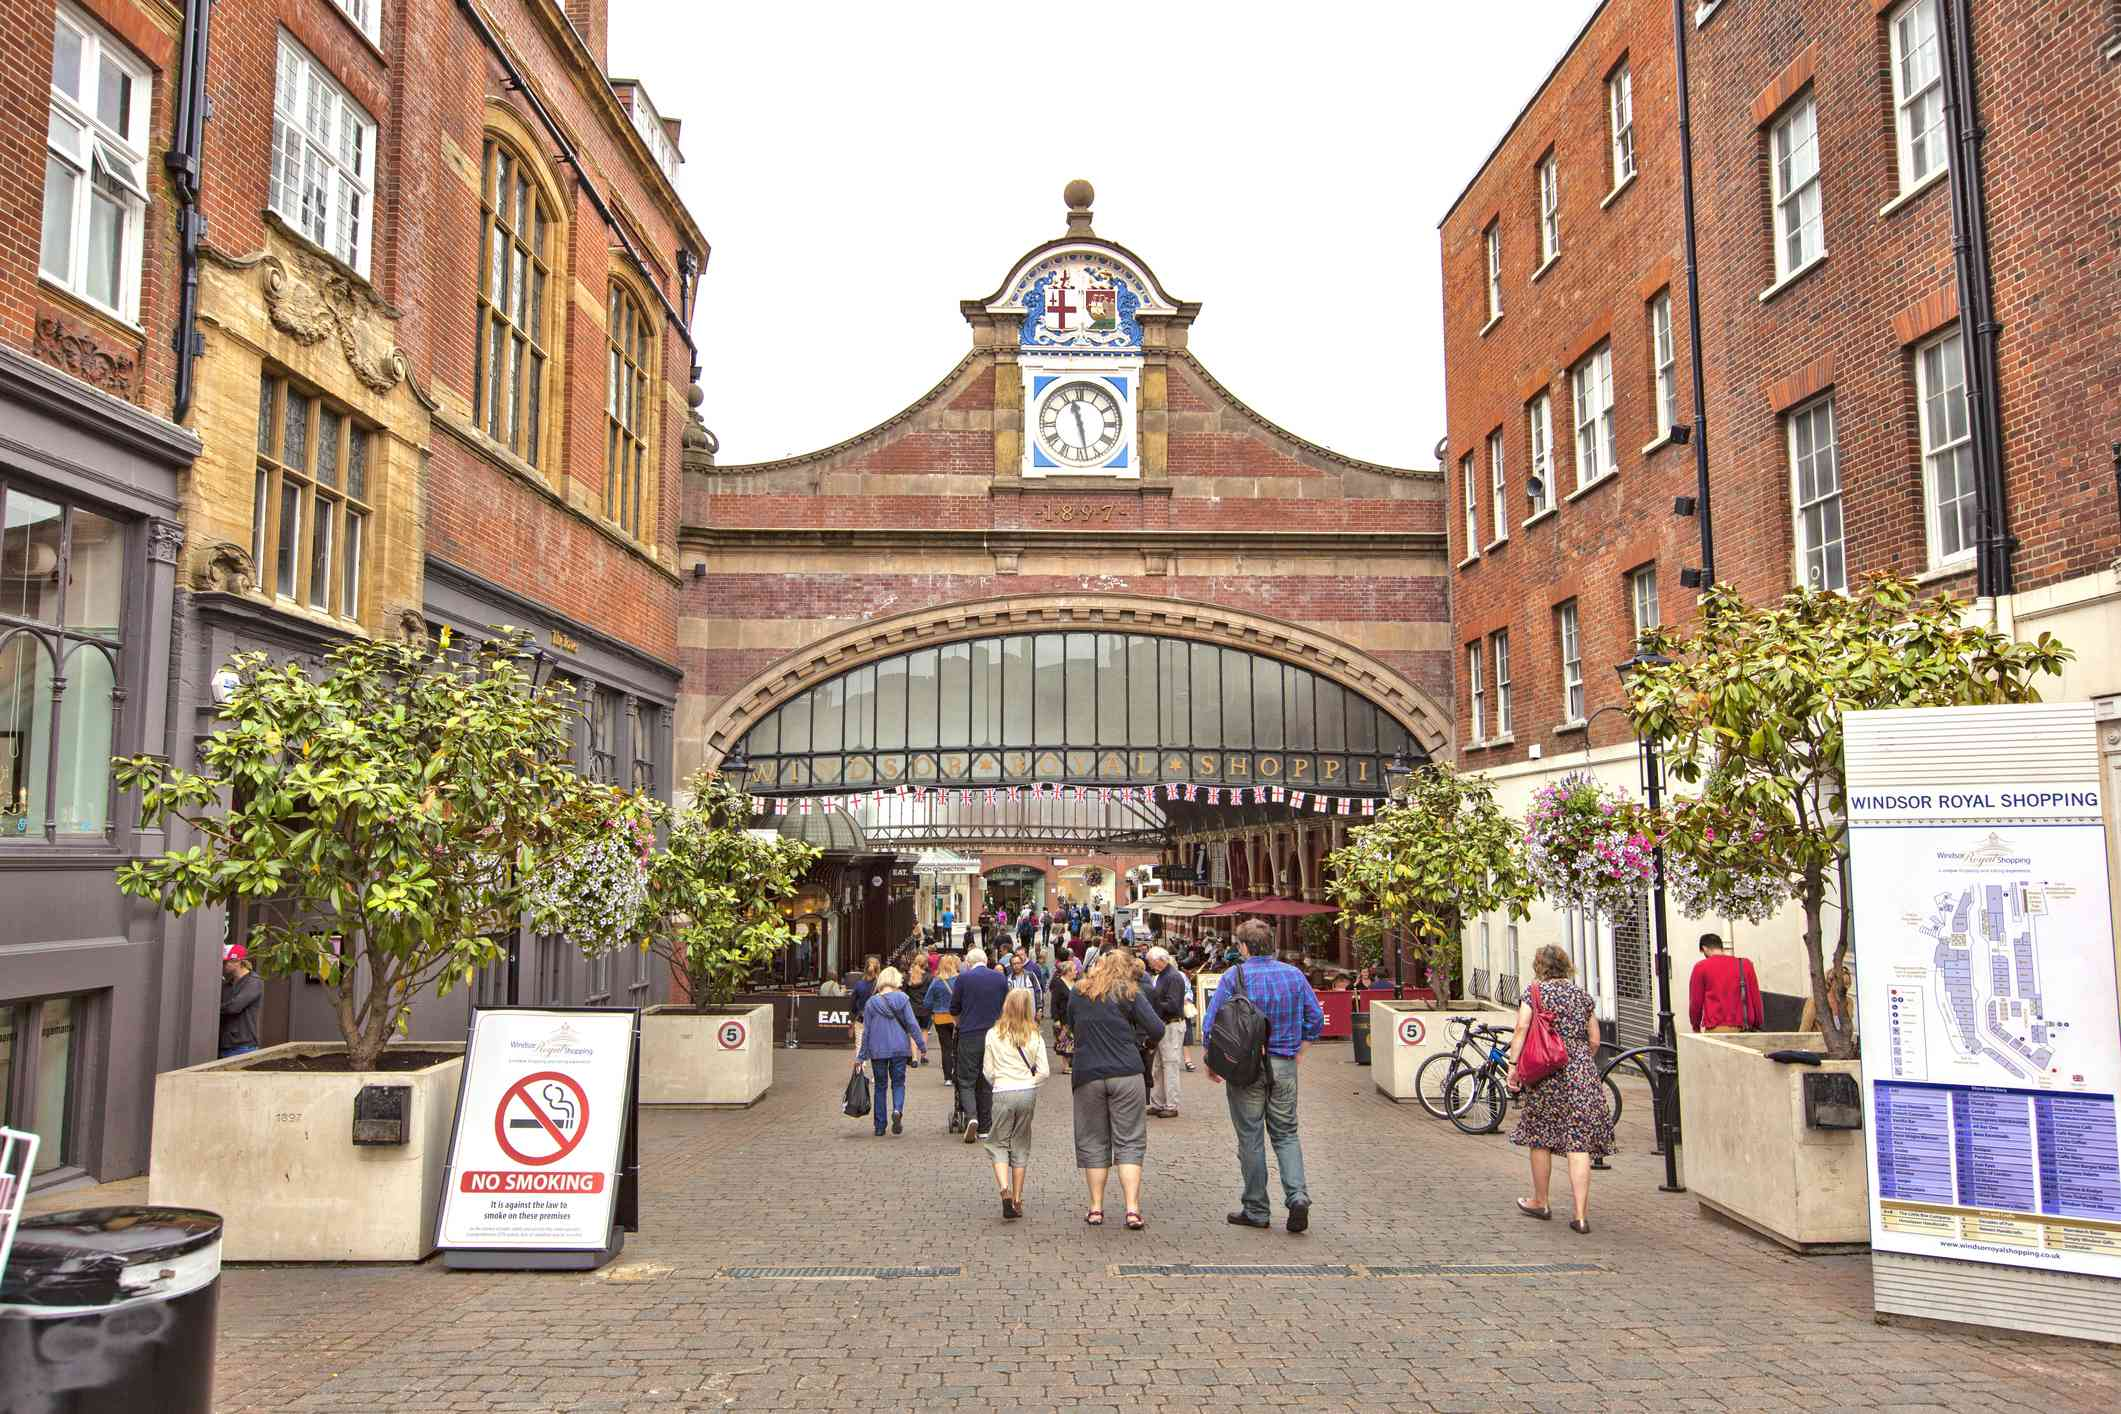 Group of people walking toward the Entrance to Windsor Royal Shopping center in Windsor, UK.